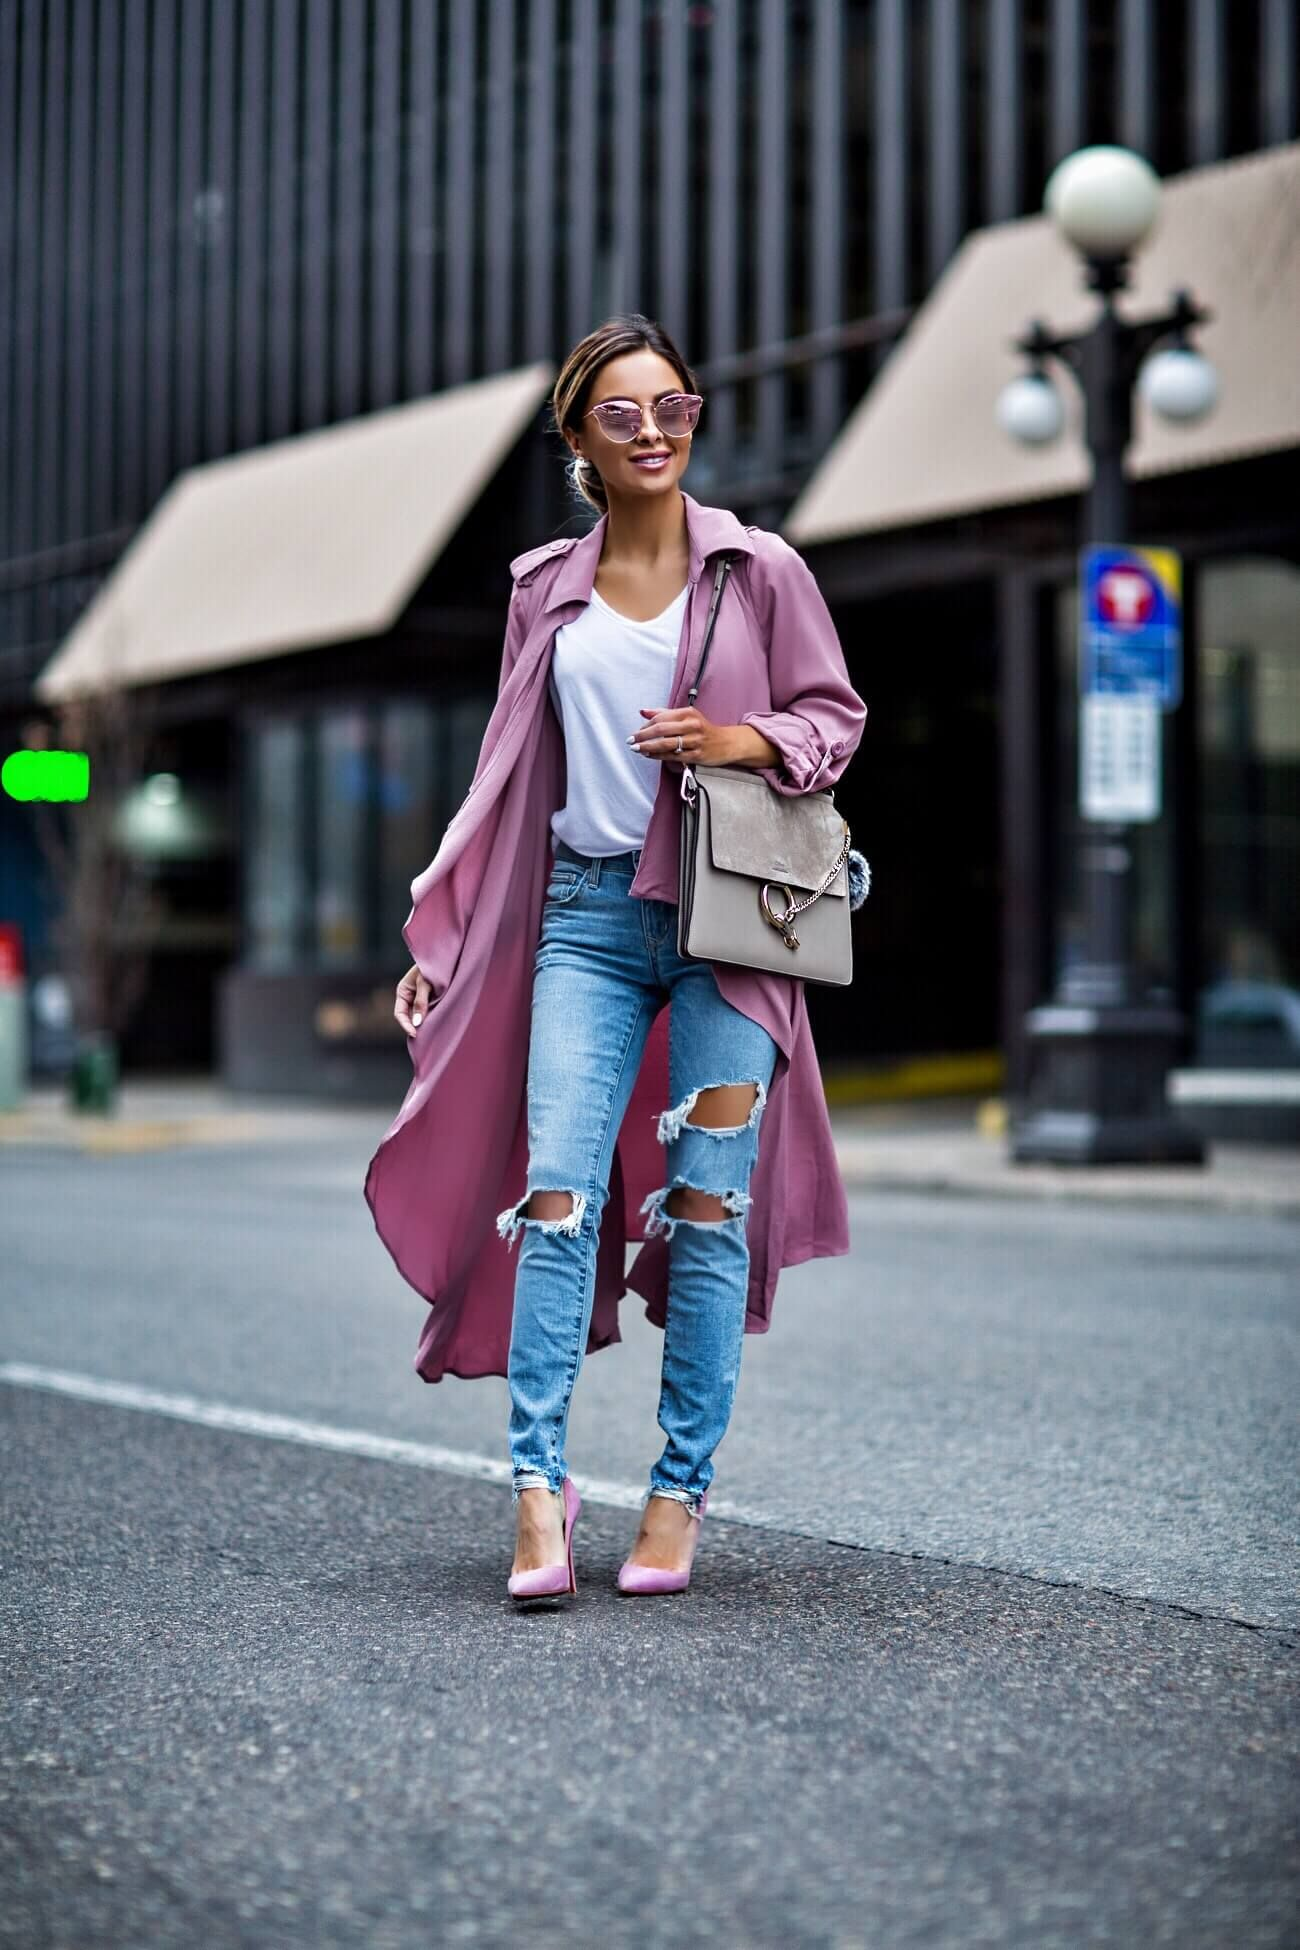 a9021870f477 mn fashion blogger mia mia mine wearing a pink trench coat and pink christian  louboutin heels